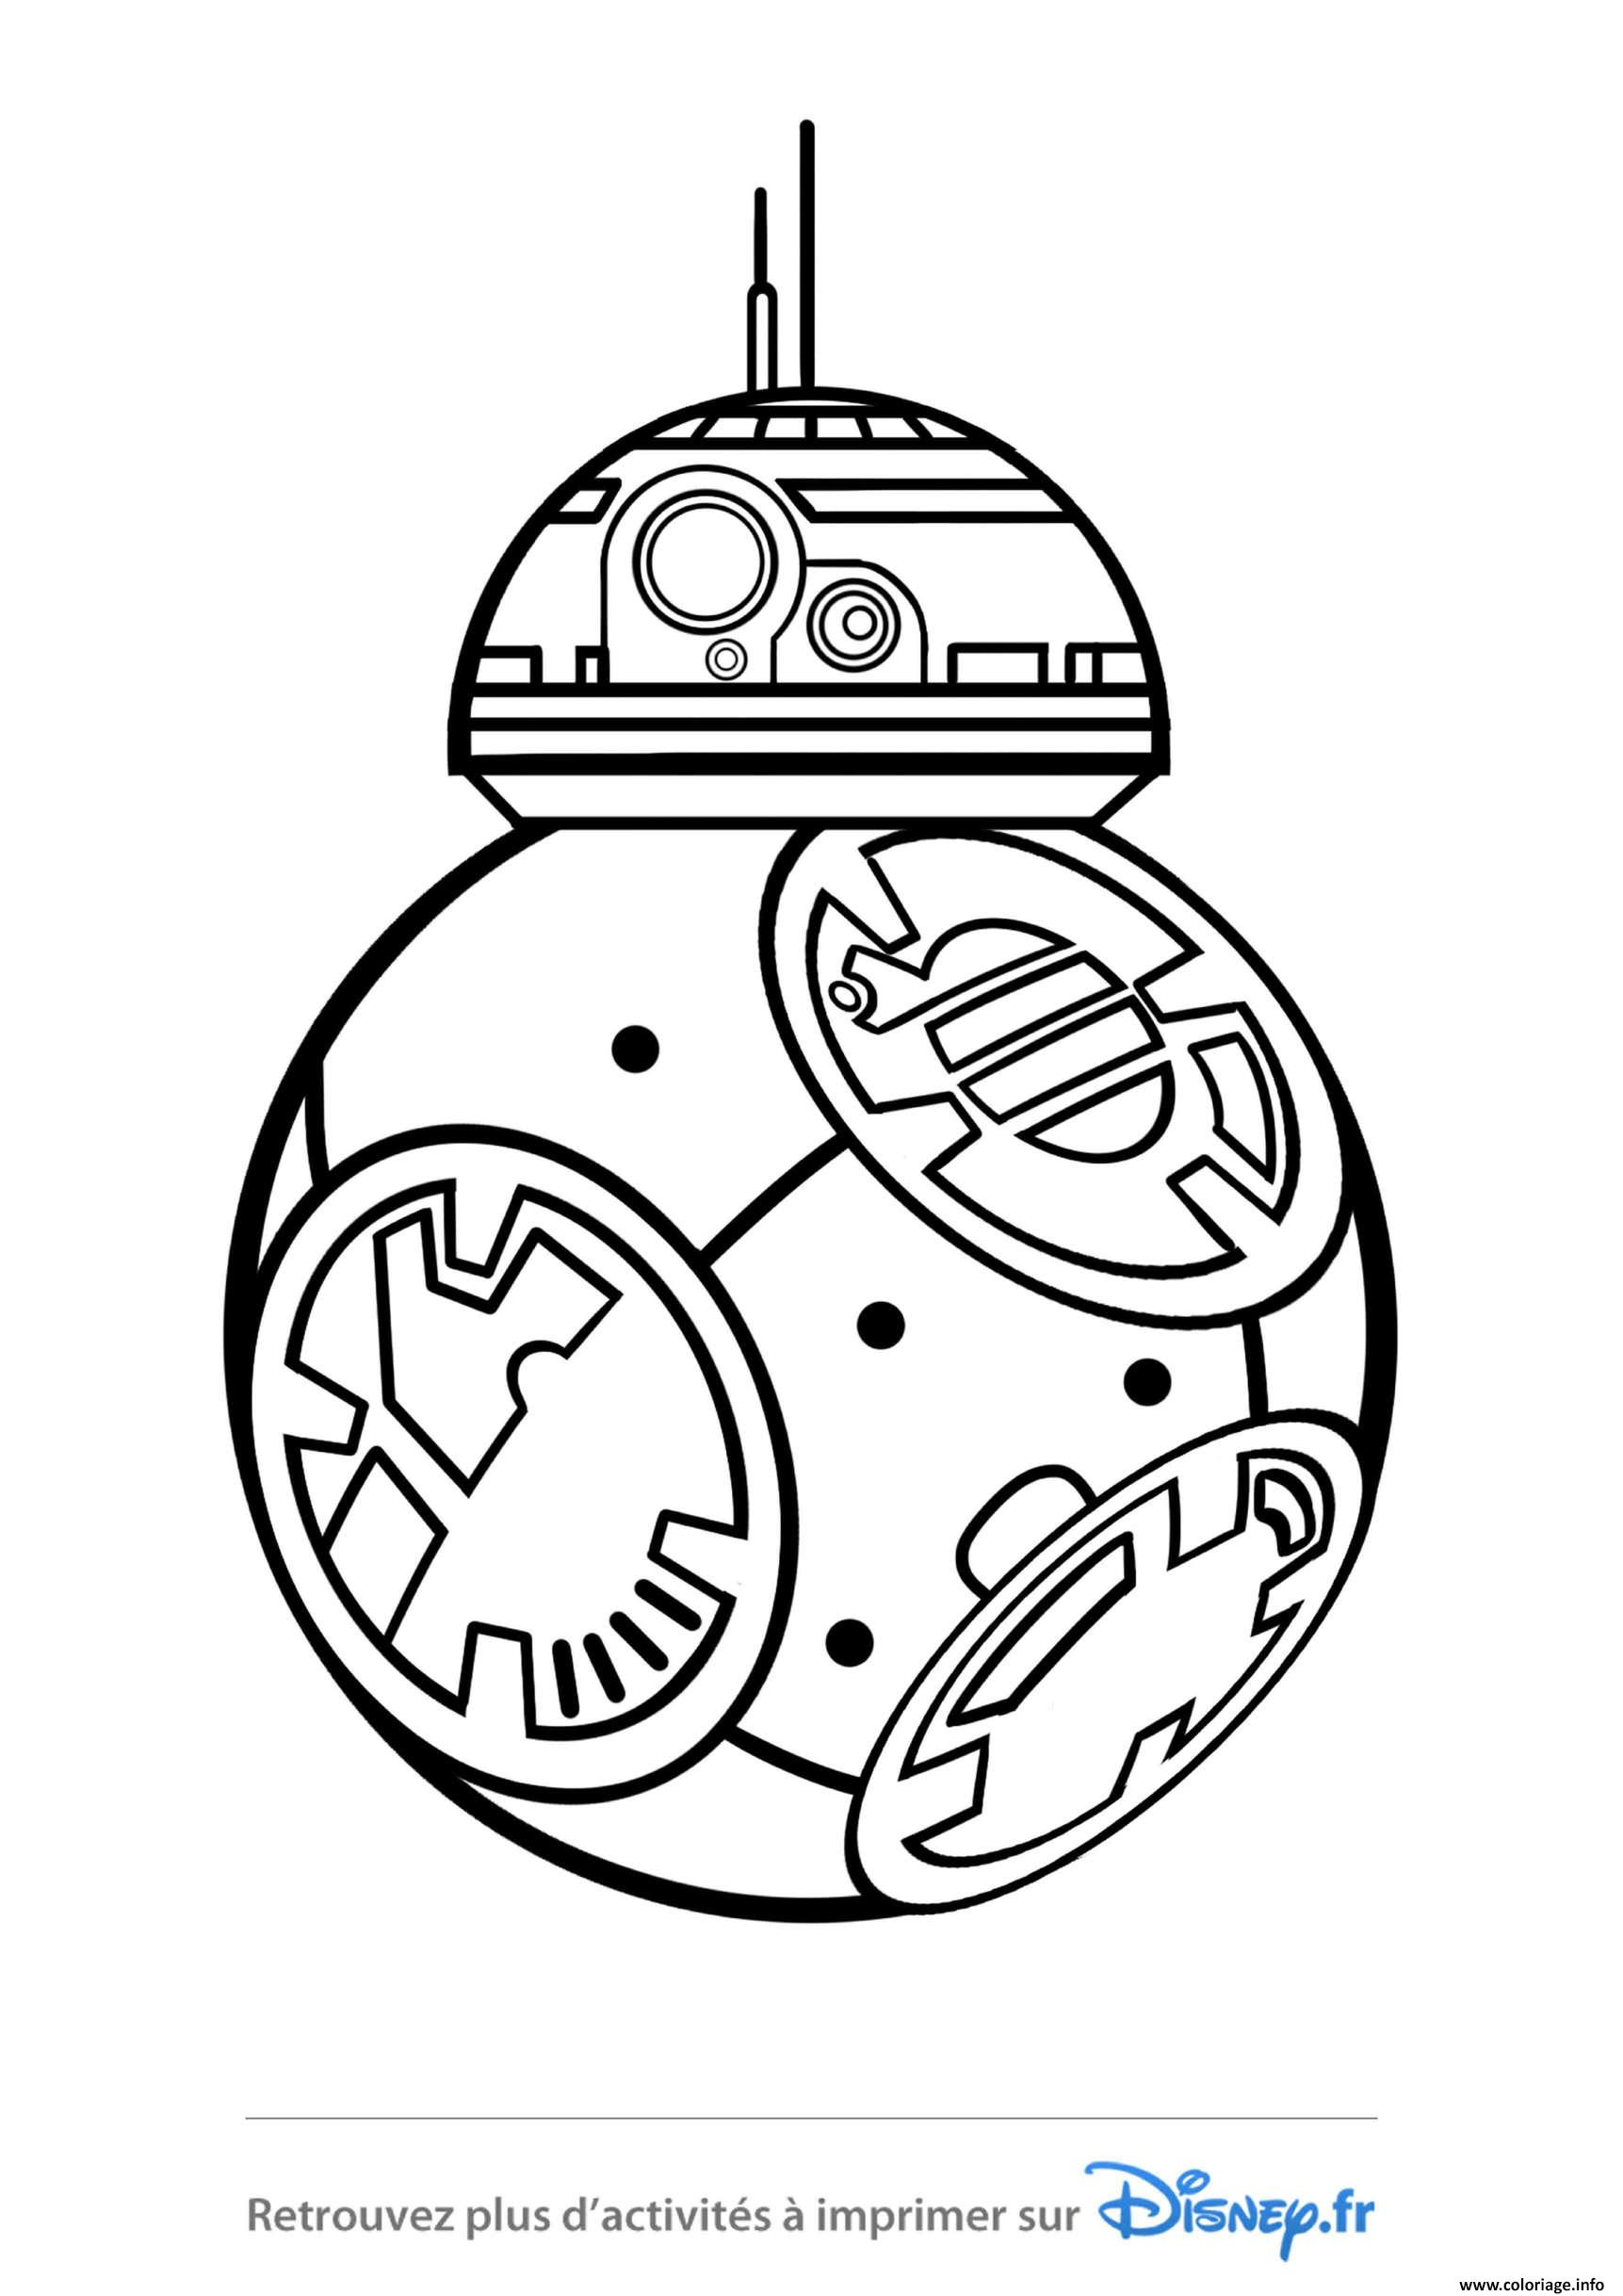 Coloriage Star Wars Bb8 Disney 2019 Dessin à Imprimer